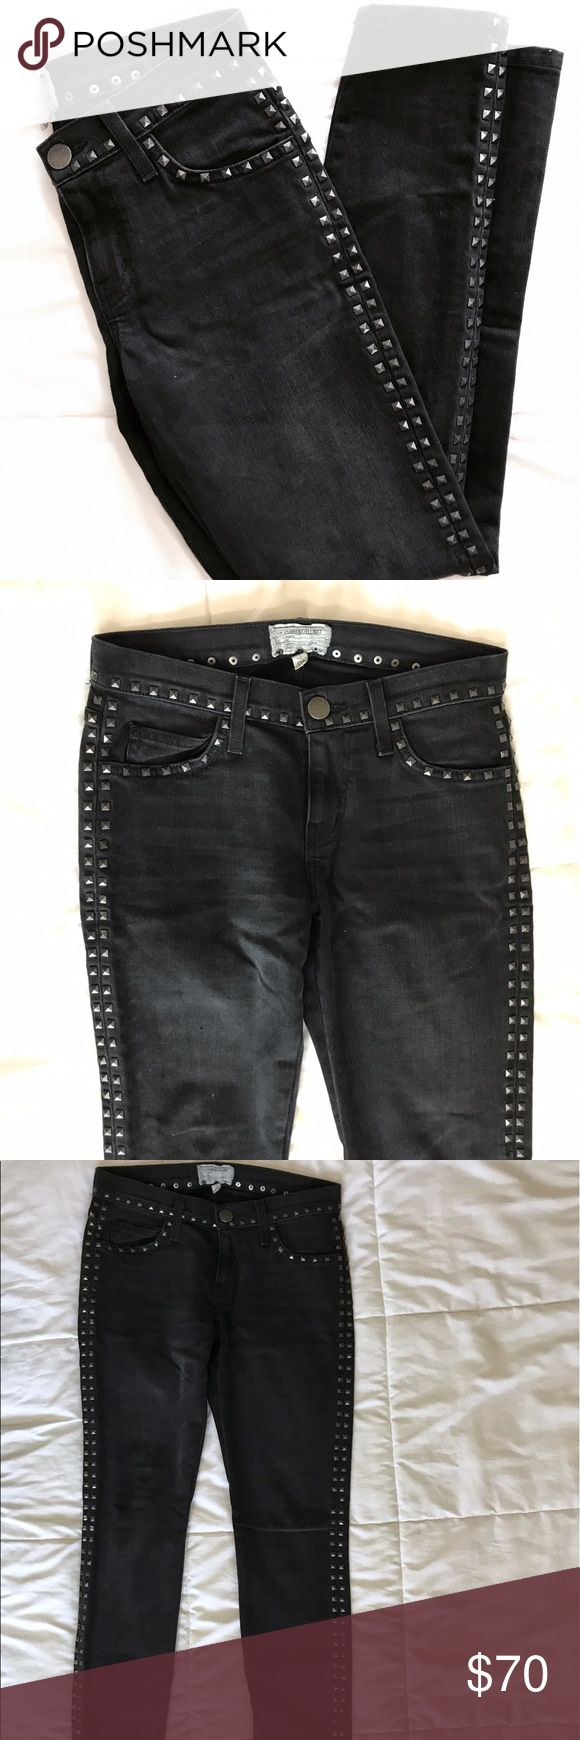 CURRENT ELLIOT The Crop Skinny Studded Jeans 24 Current Elliot Cropped Skinny with Studs on the sides. Worn maybe 4 times! Keep in mind may be heavy to ship with Studs (not positive) I worked in retail for many years and these were cared for properly. Current/Elliott Jeans Ankle & Cropped